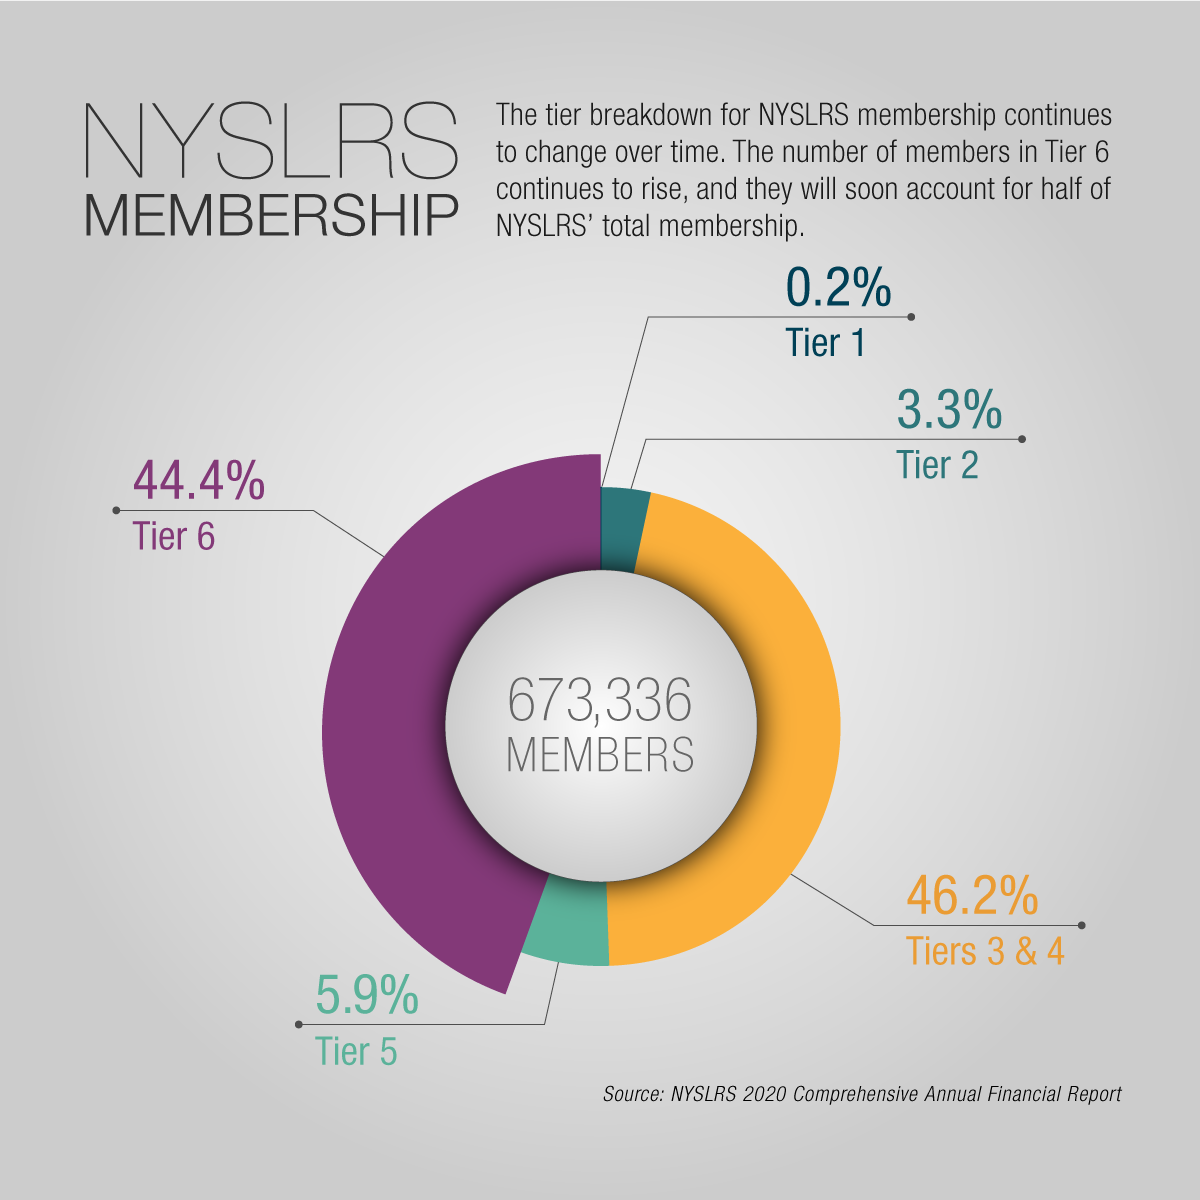 NYSLRS Membership by Tier